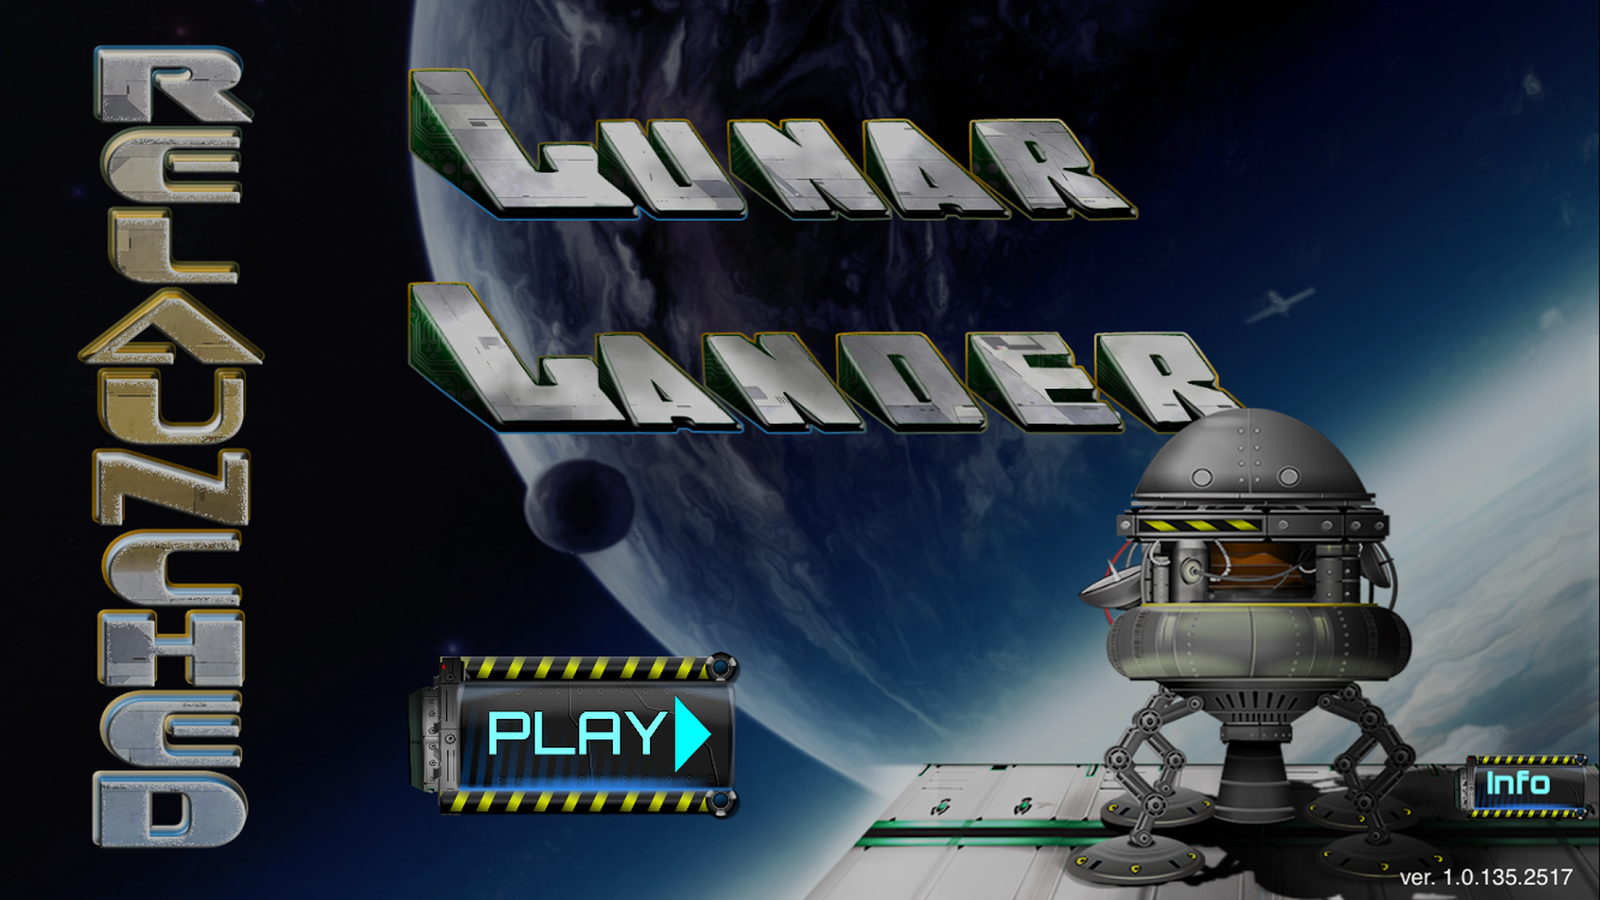 Lunar lander relaunched - Android Apps on Google Play